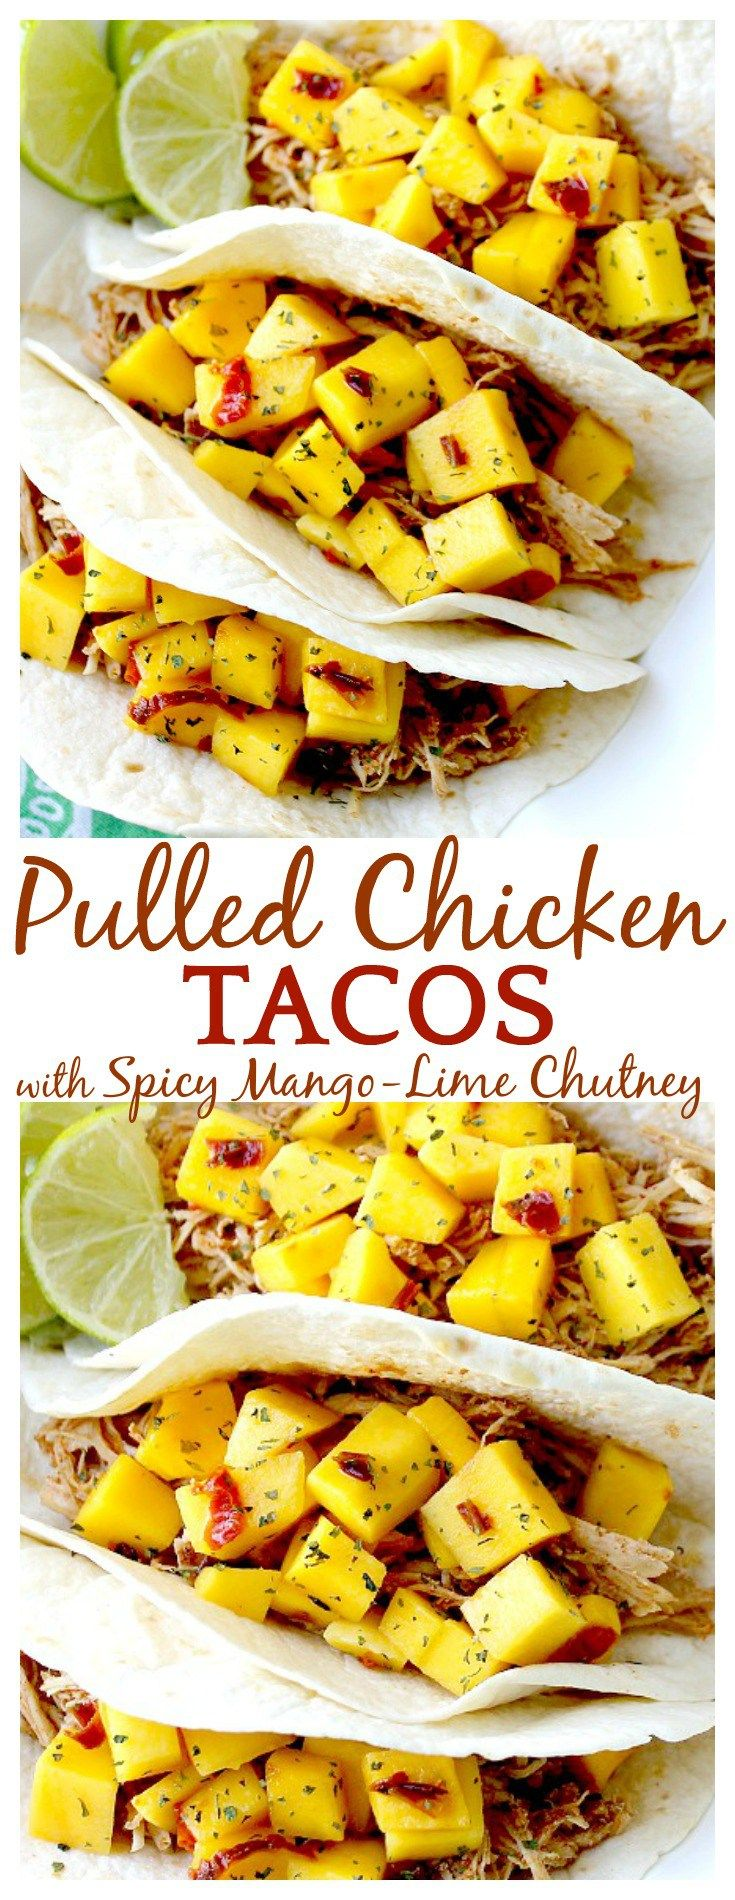 Such a fun, yummy way to change up taco night once in awhile! This pulled chicken taco recipe uses a traditional taco seasoning in the chicken and then a sweet and spicy mango chutney on top - sooooo good!